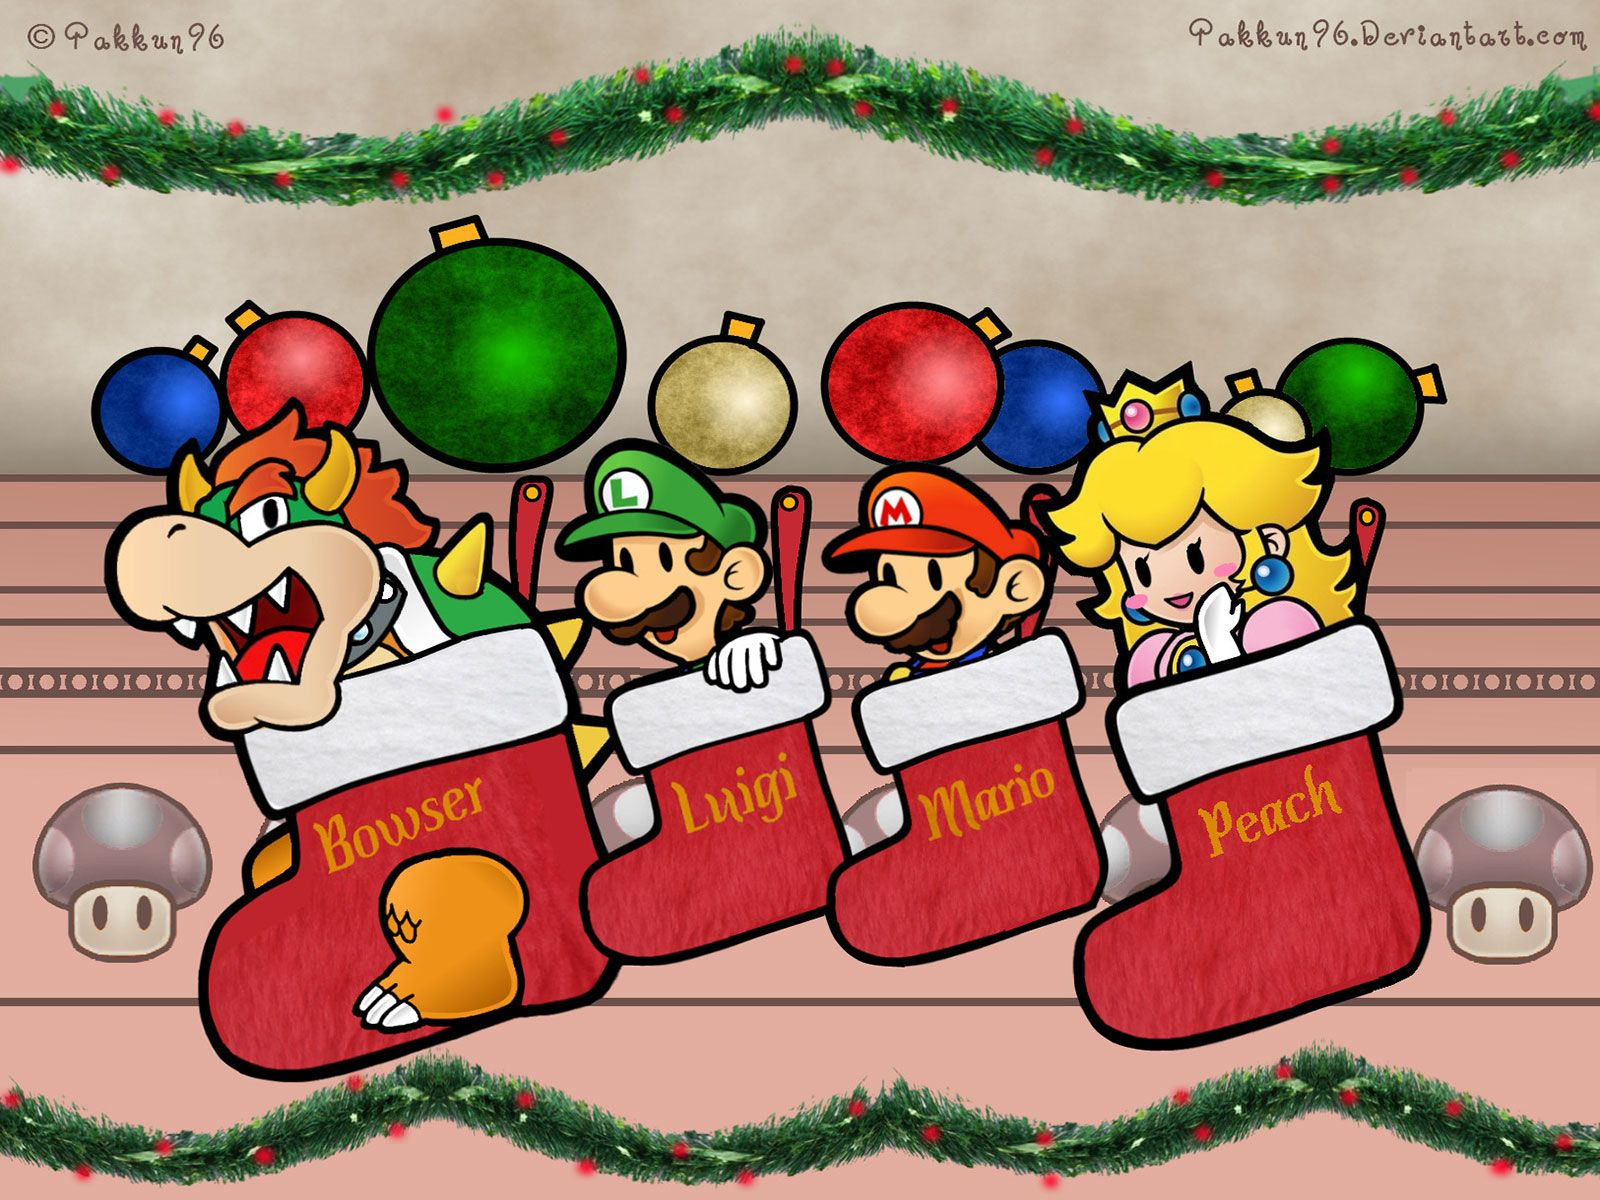 Super Mario Characters In Christmas Socks Wallpaper | Video Game ...